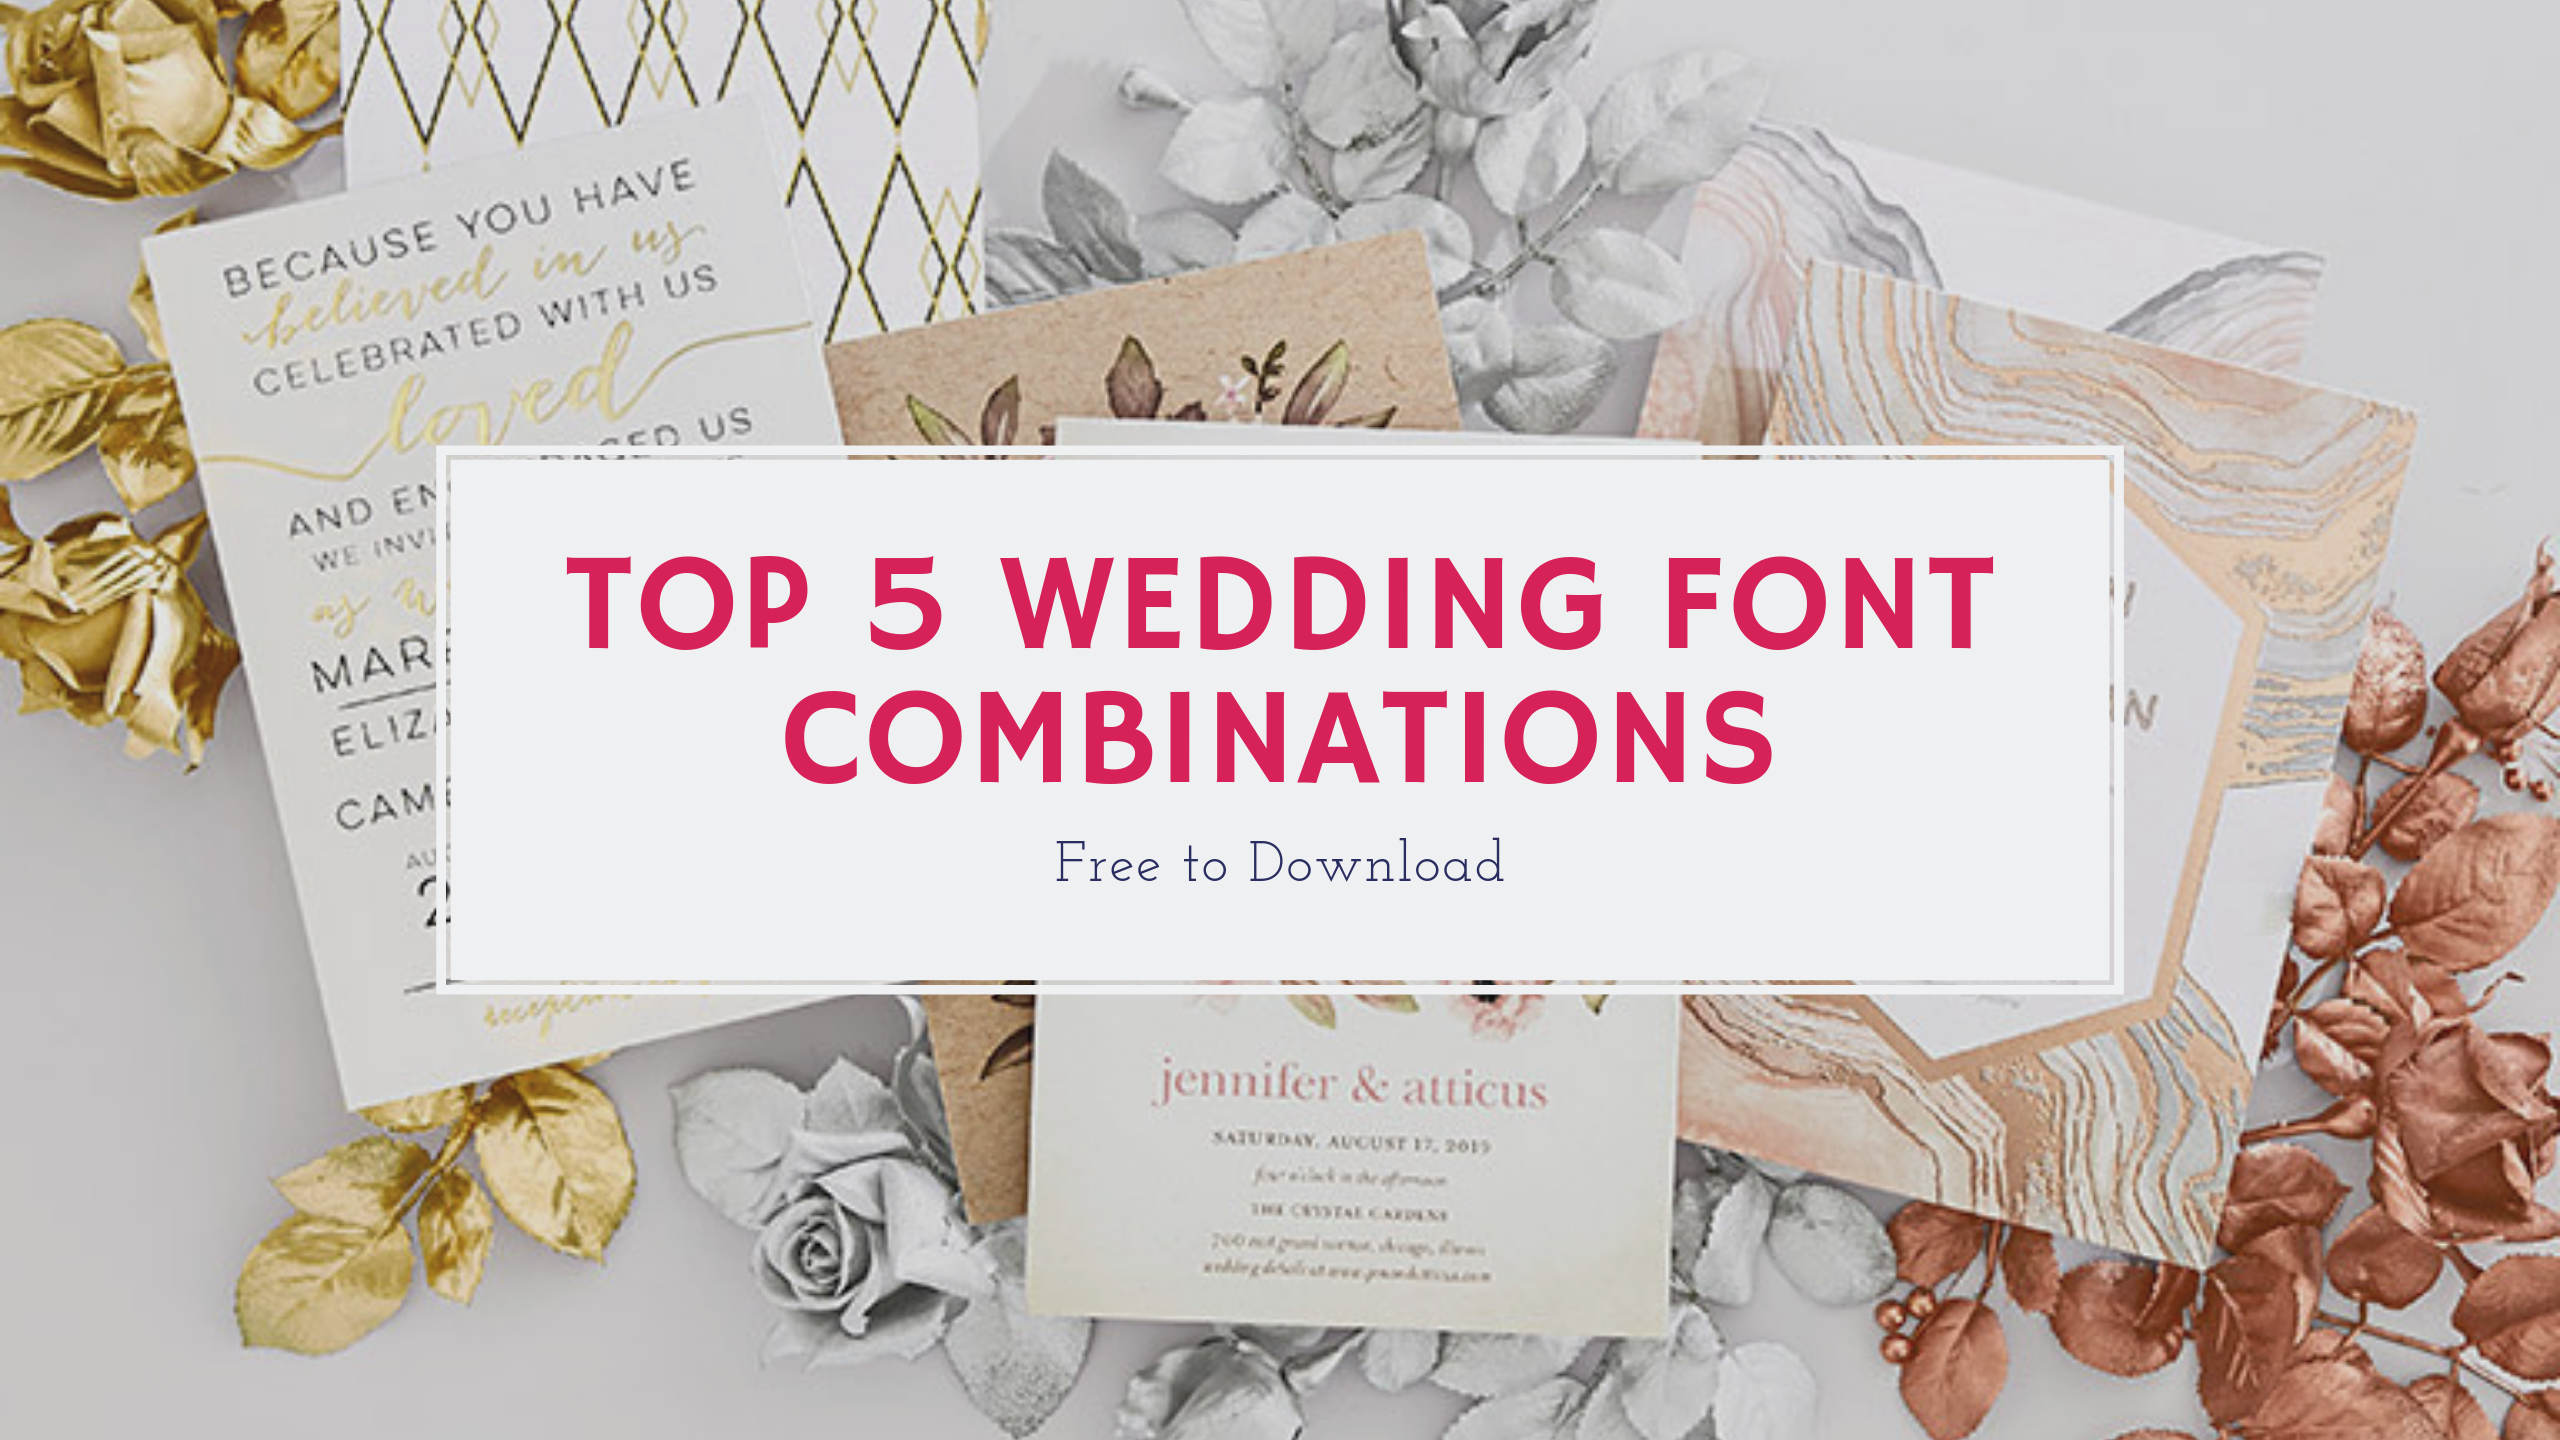 TOP 5 WEDDING FONT COMBINATIONS Wedding fonts, Save the